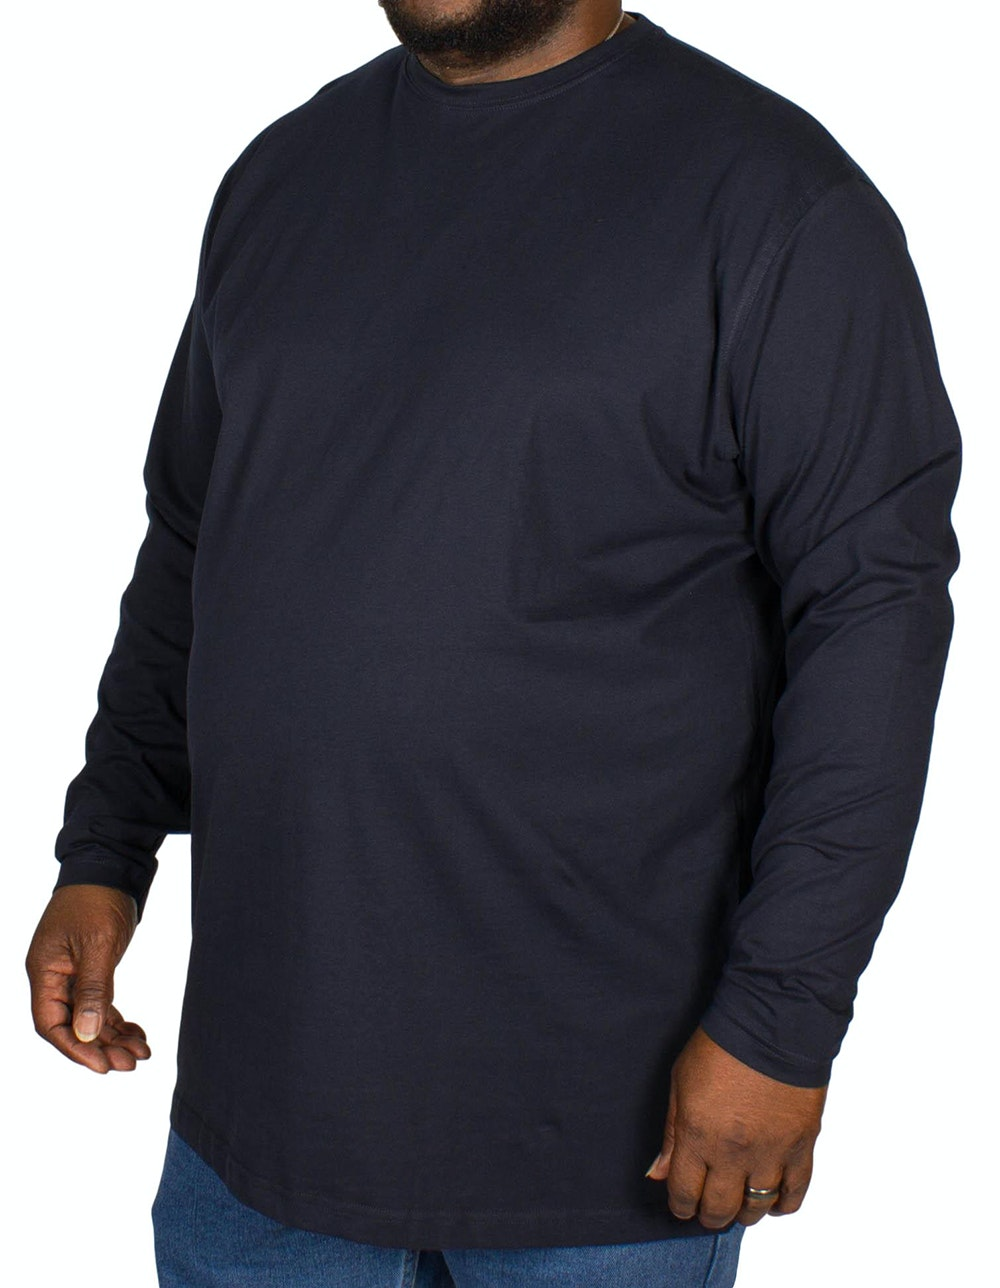 Espionage Plain Long Sleeve T-shirt Navy